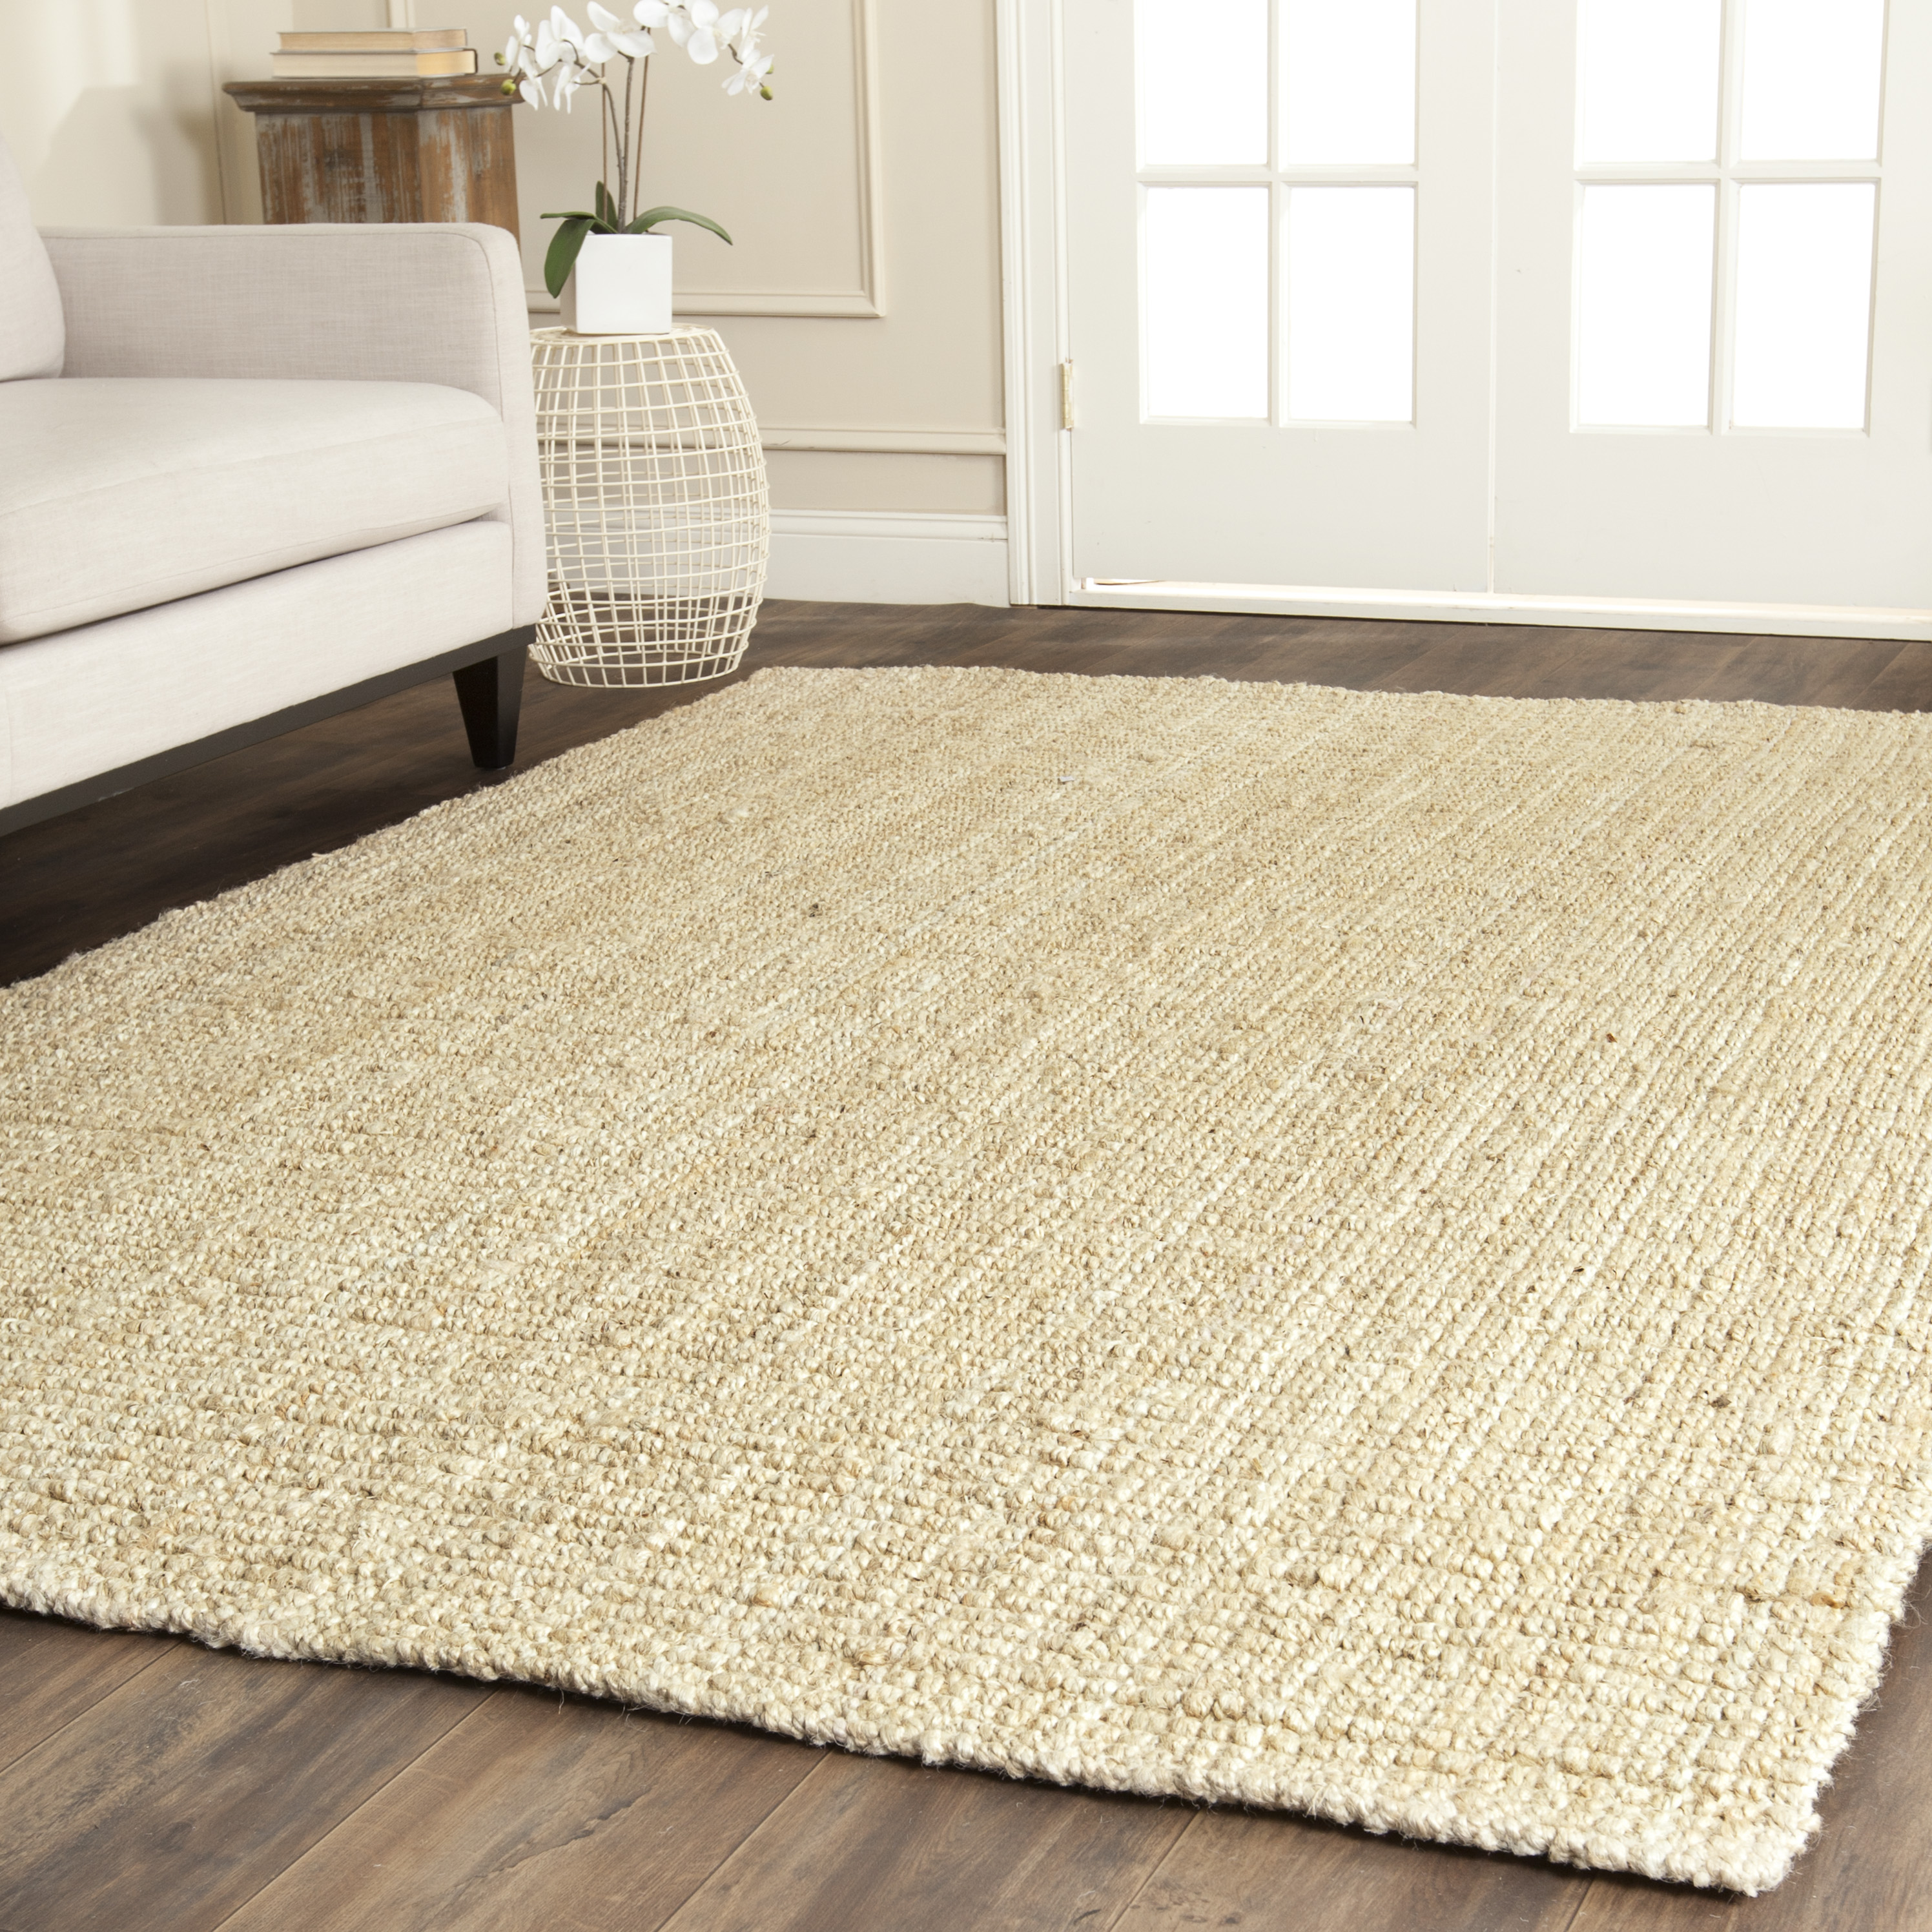 Safavieh Natural Fiber Milica Braided Area Rug or Runner